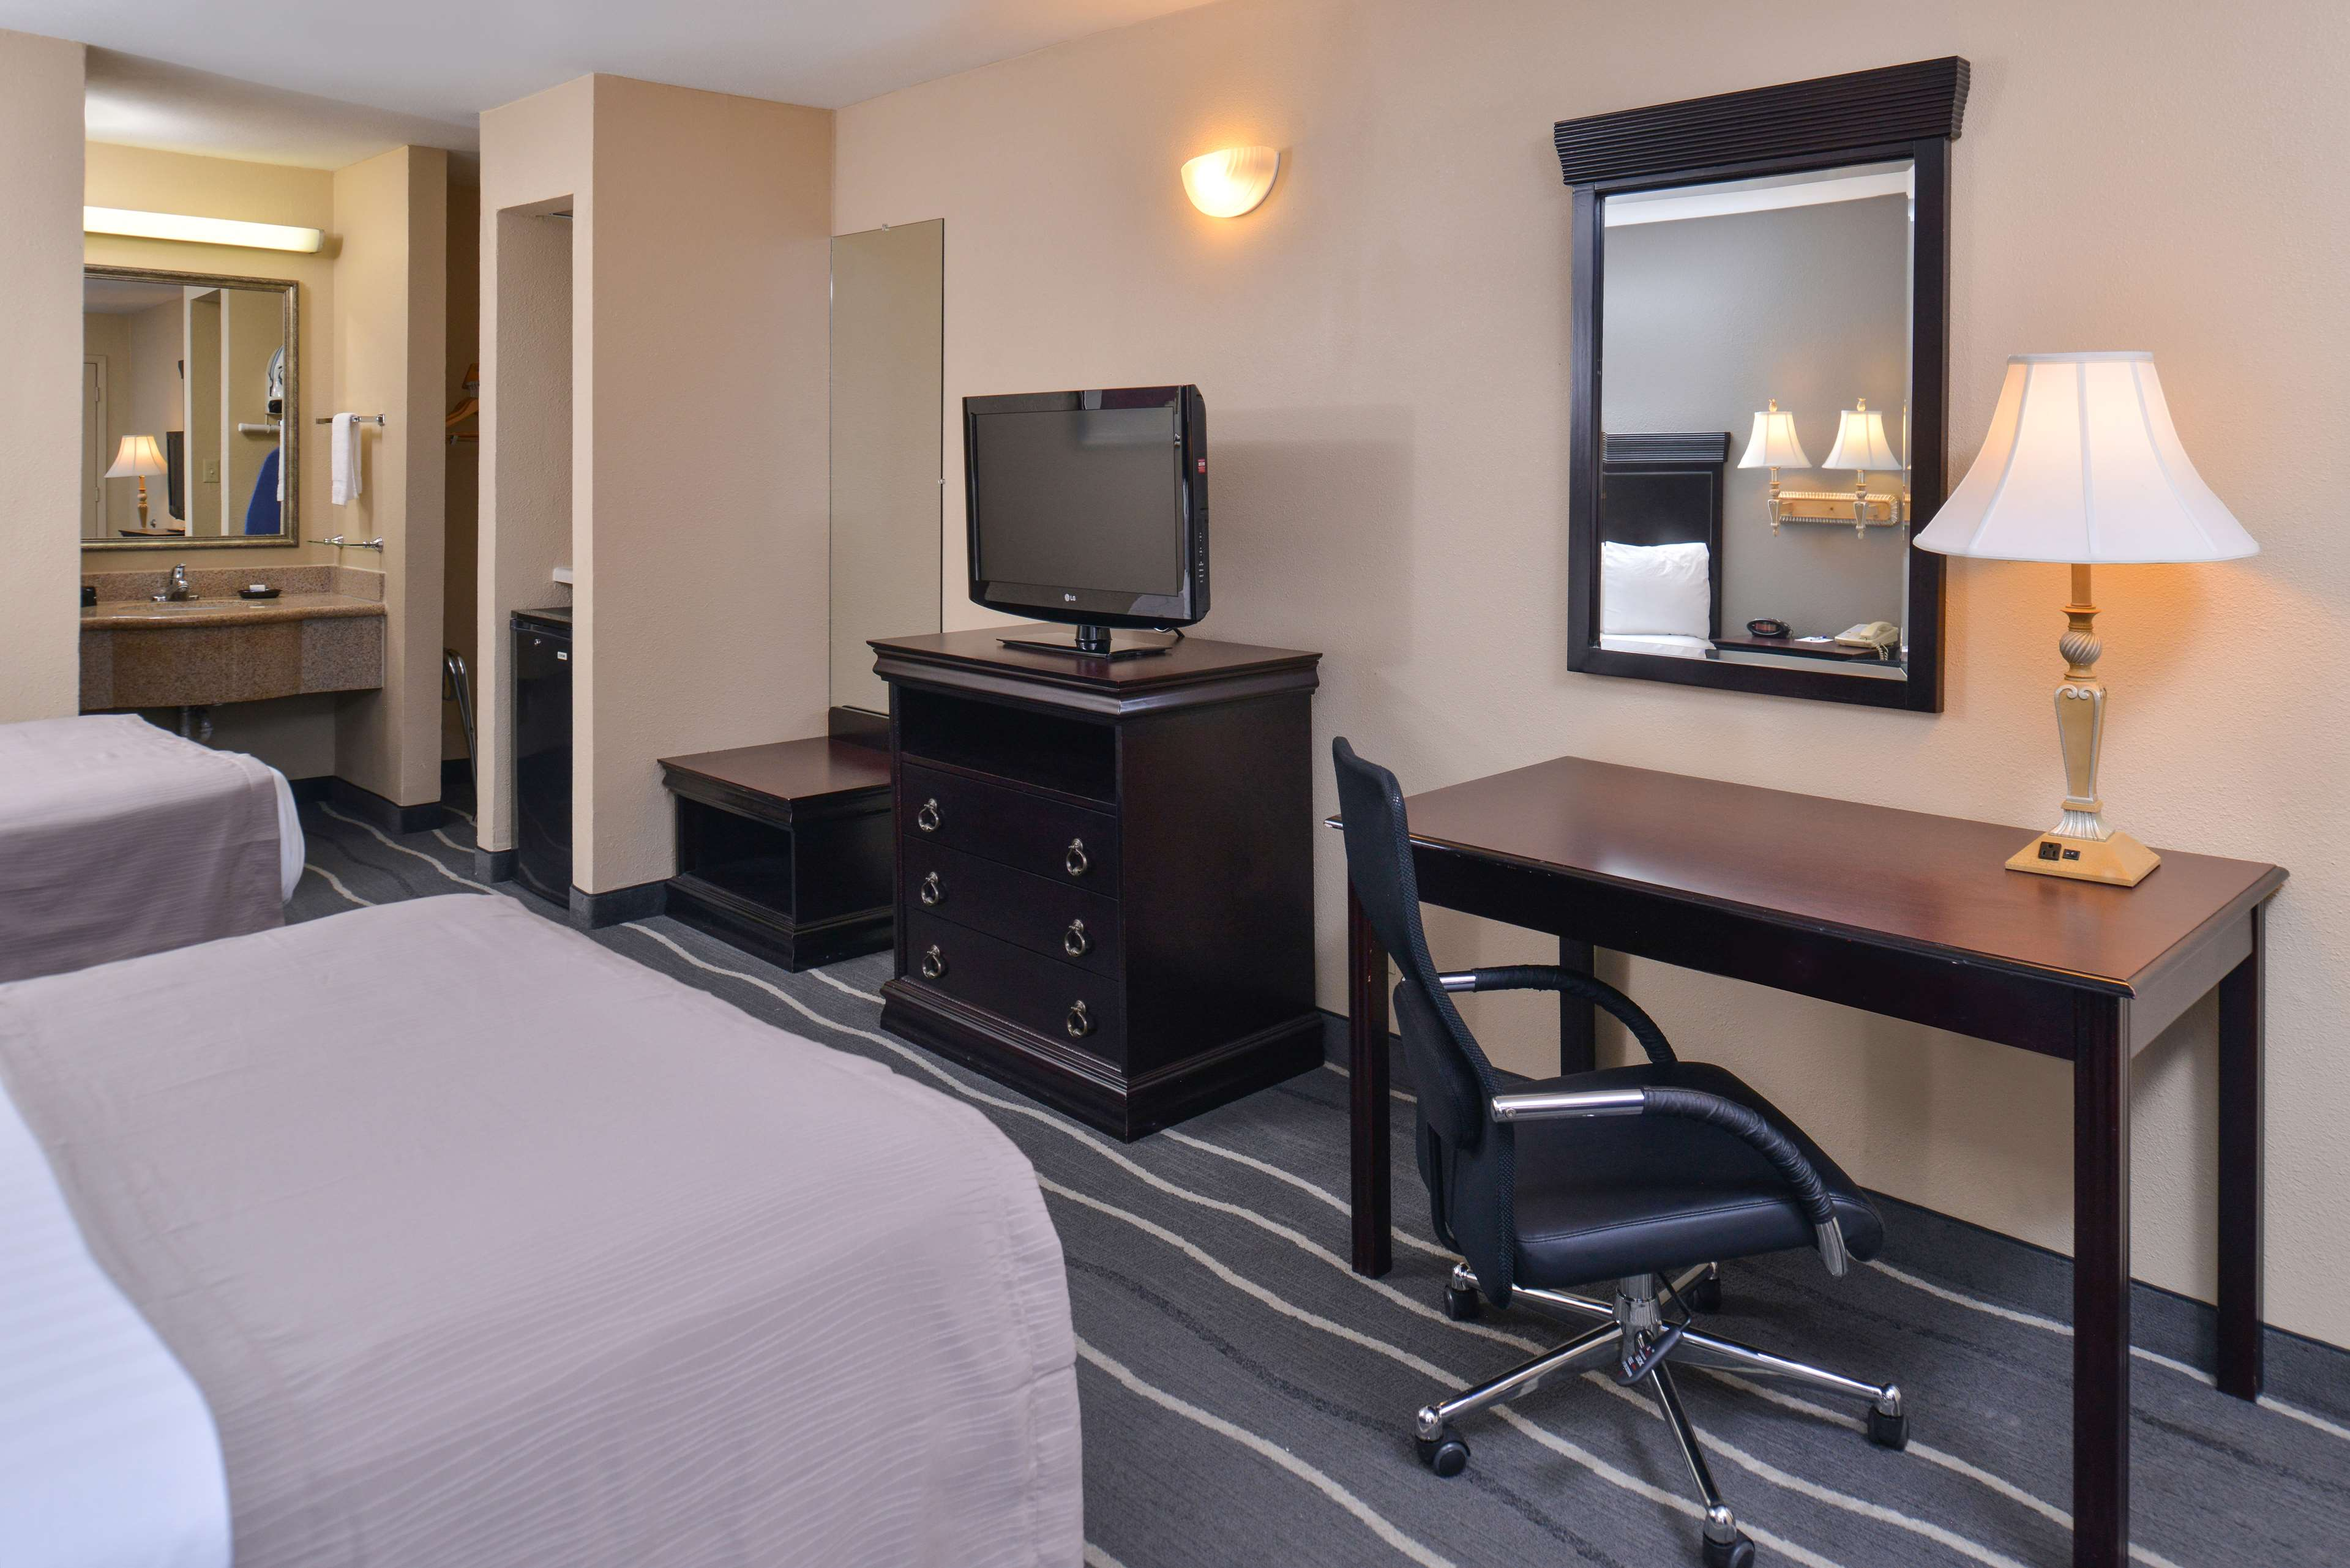 Best Western Irving Inn & Suites at DFW Airport image 14